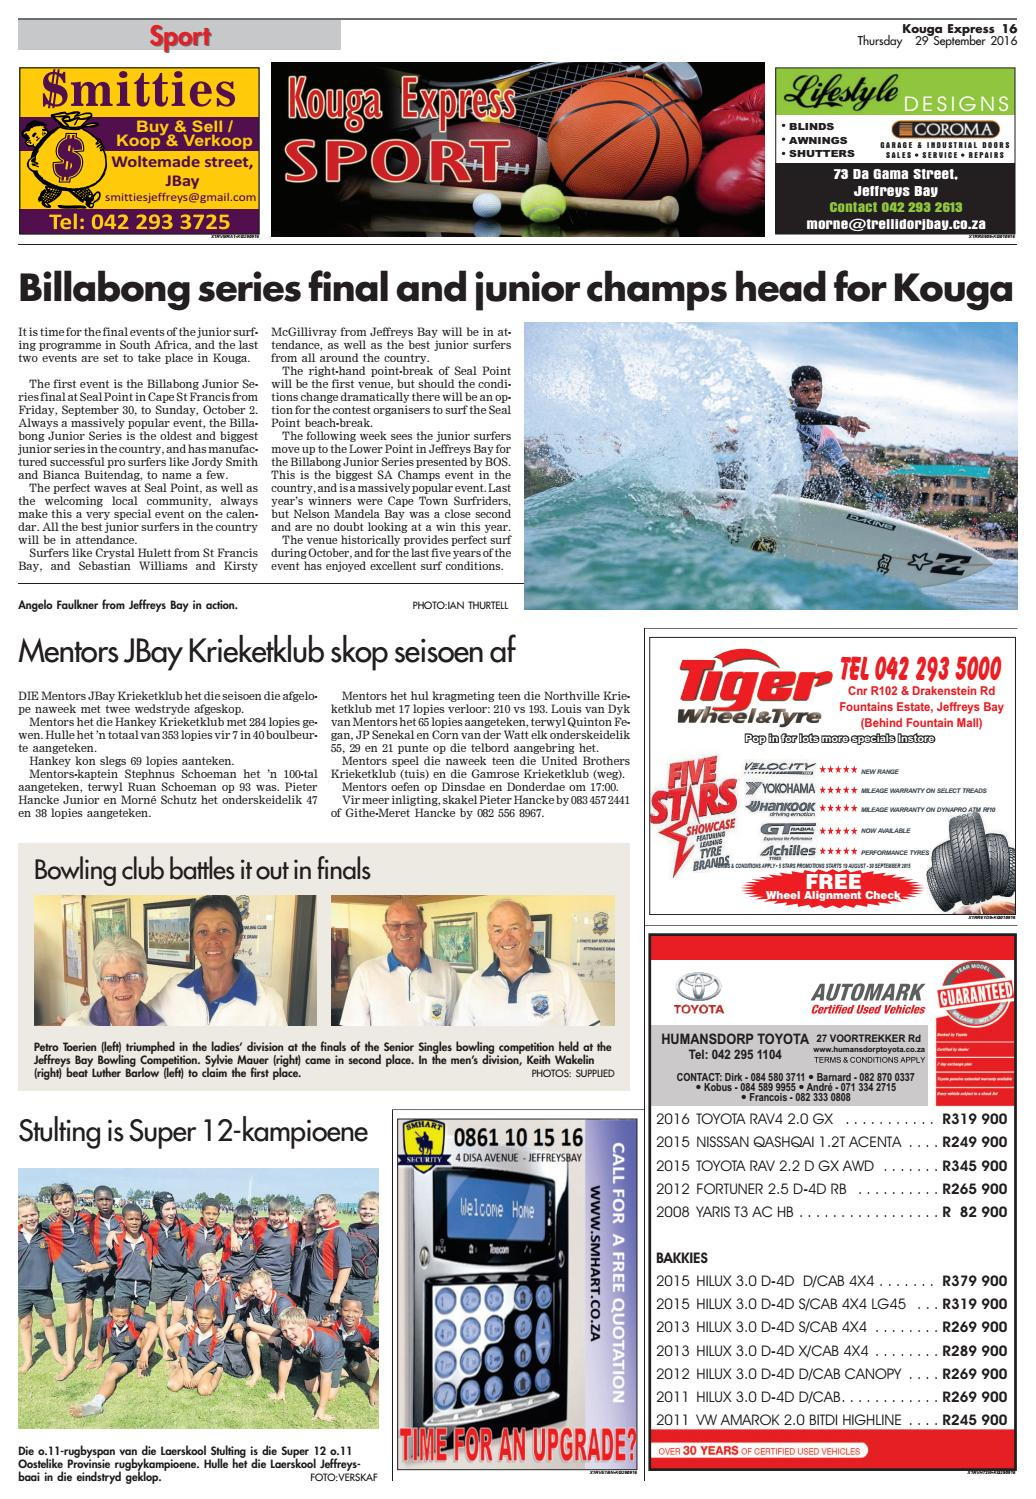 Kouga Express 29 September 2016 By Kouga Express Issuu